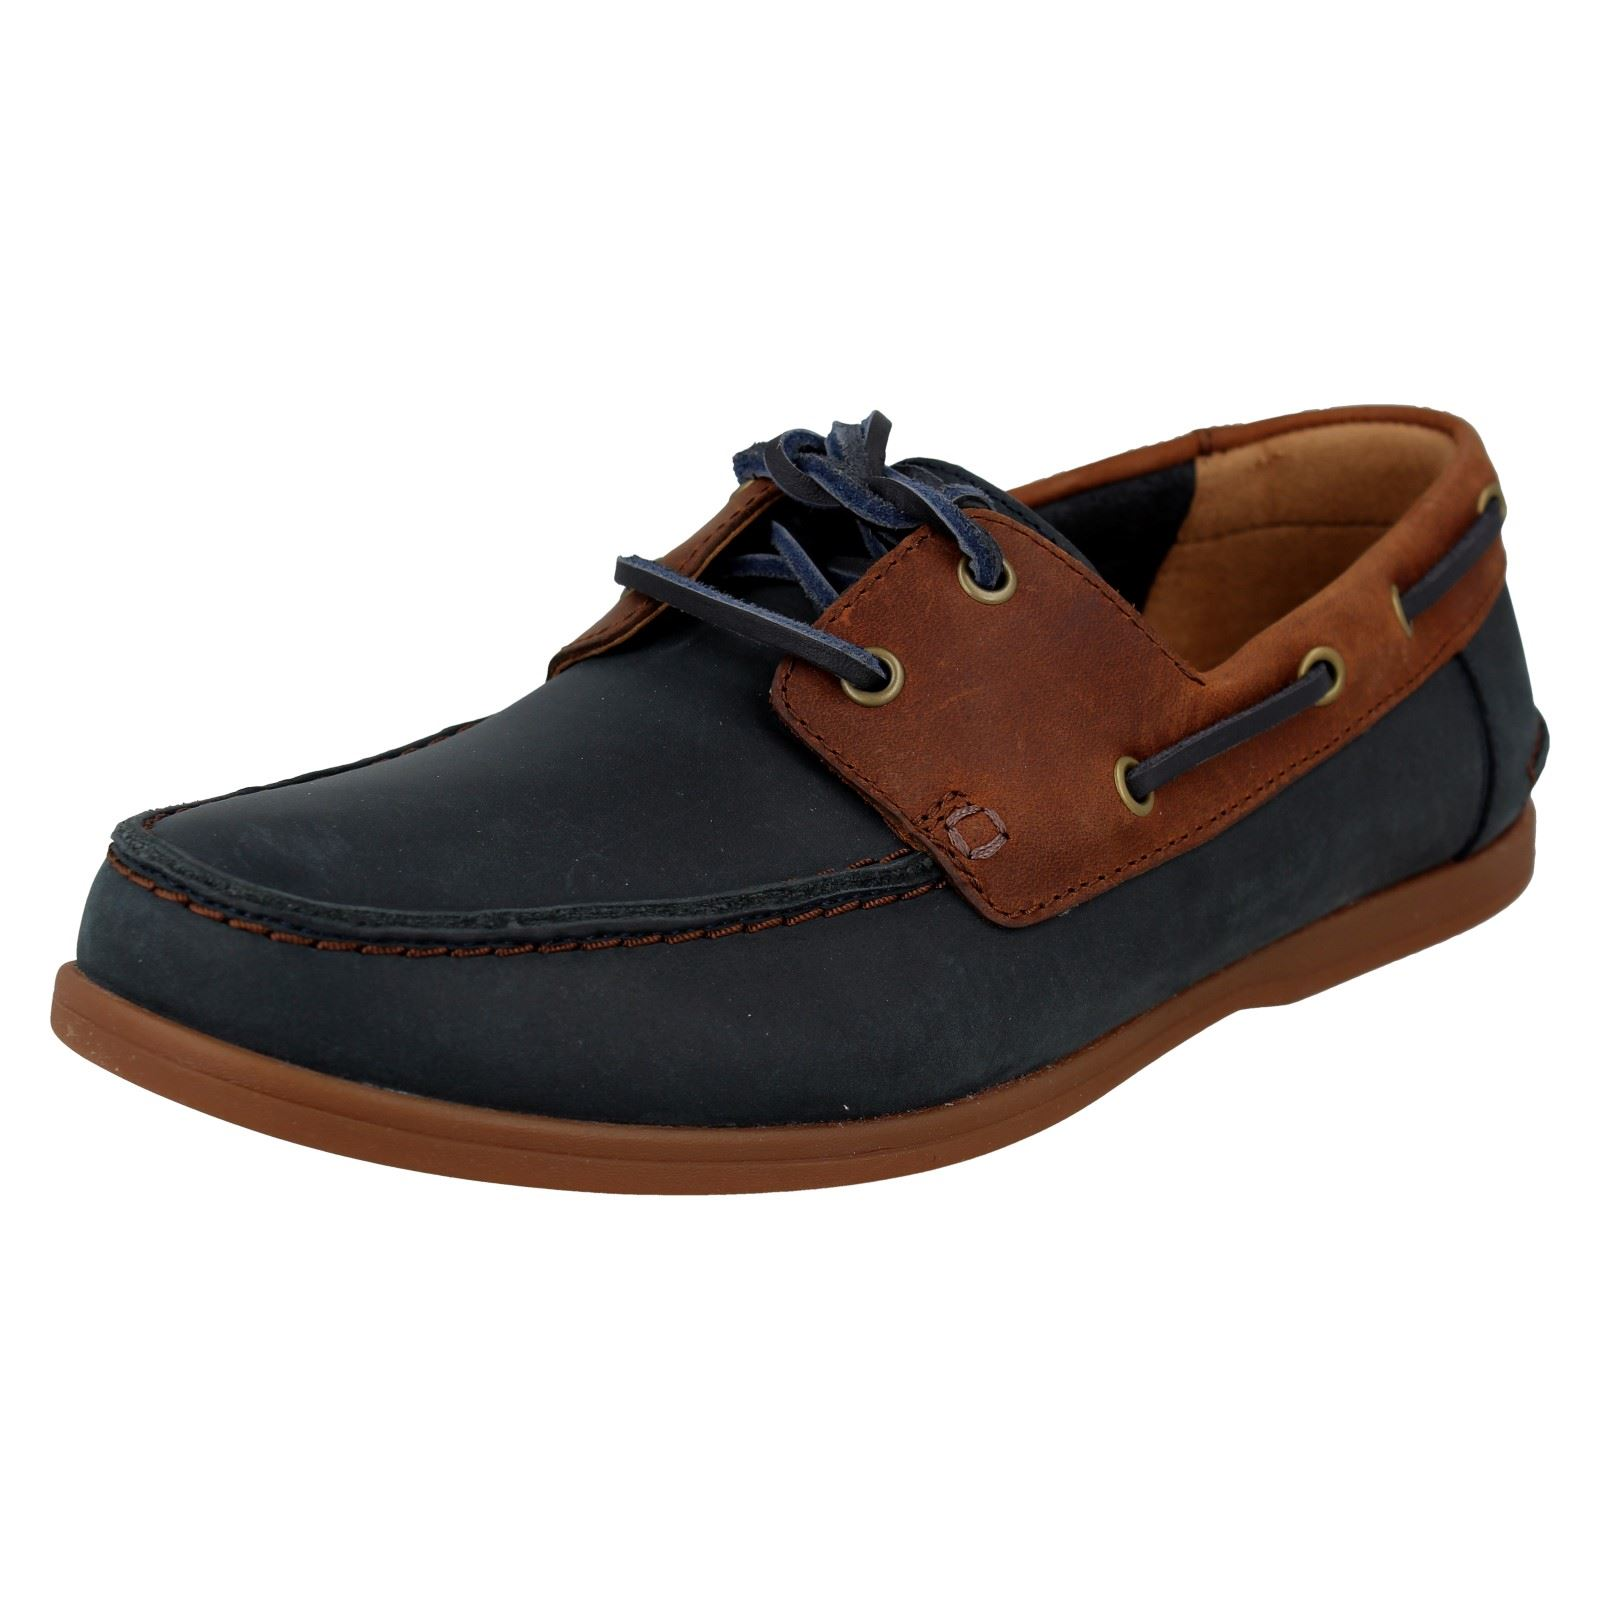 Details zu Mens Clarks Lace Up Deck Shoes Pickwell Sail